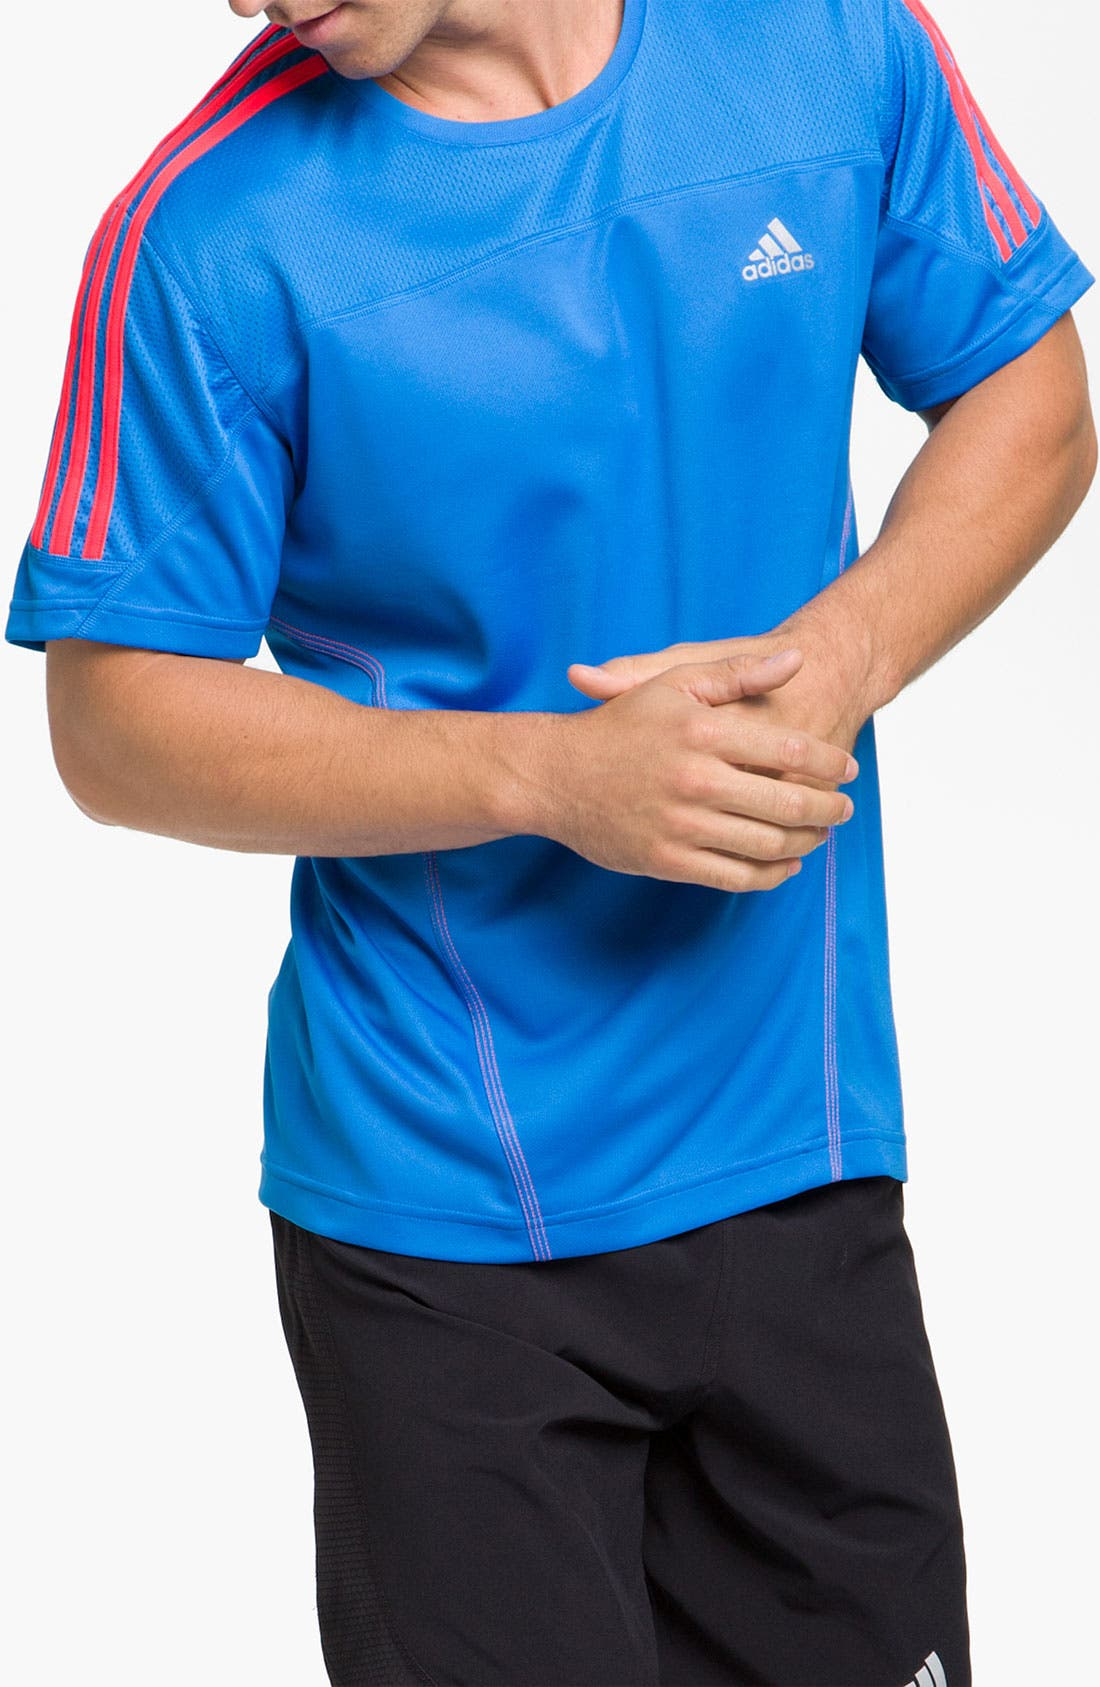 Alternate Image 1 Selected - adidas 'Response Drei Streifen' T-Shirt